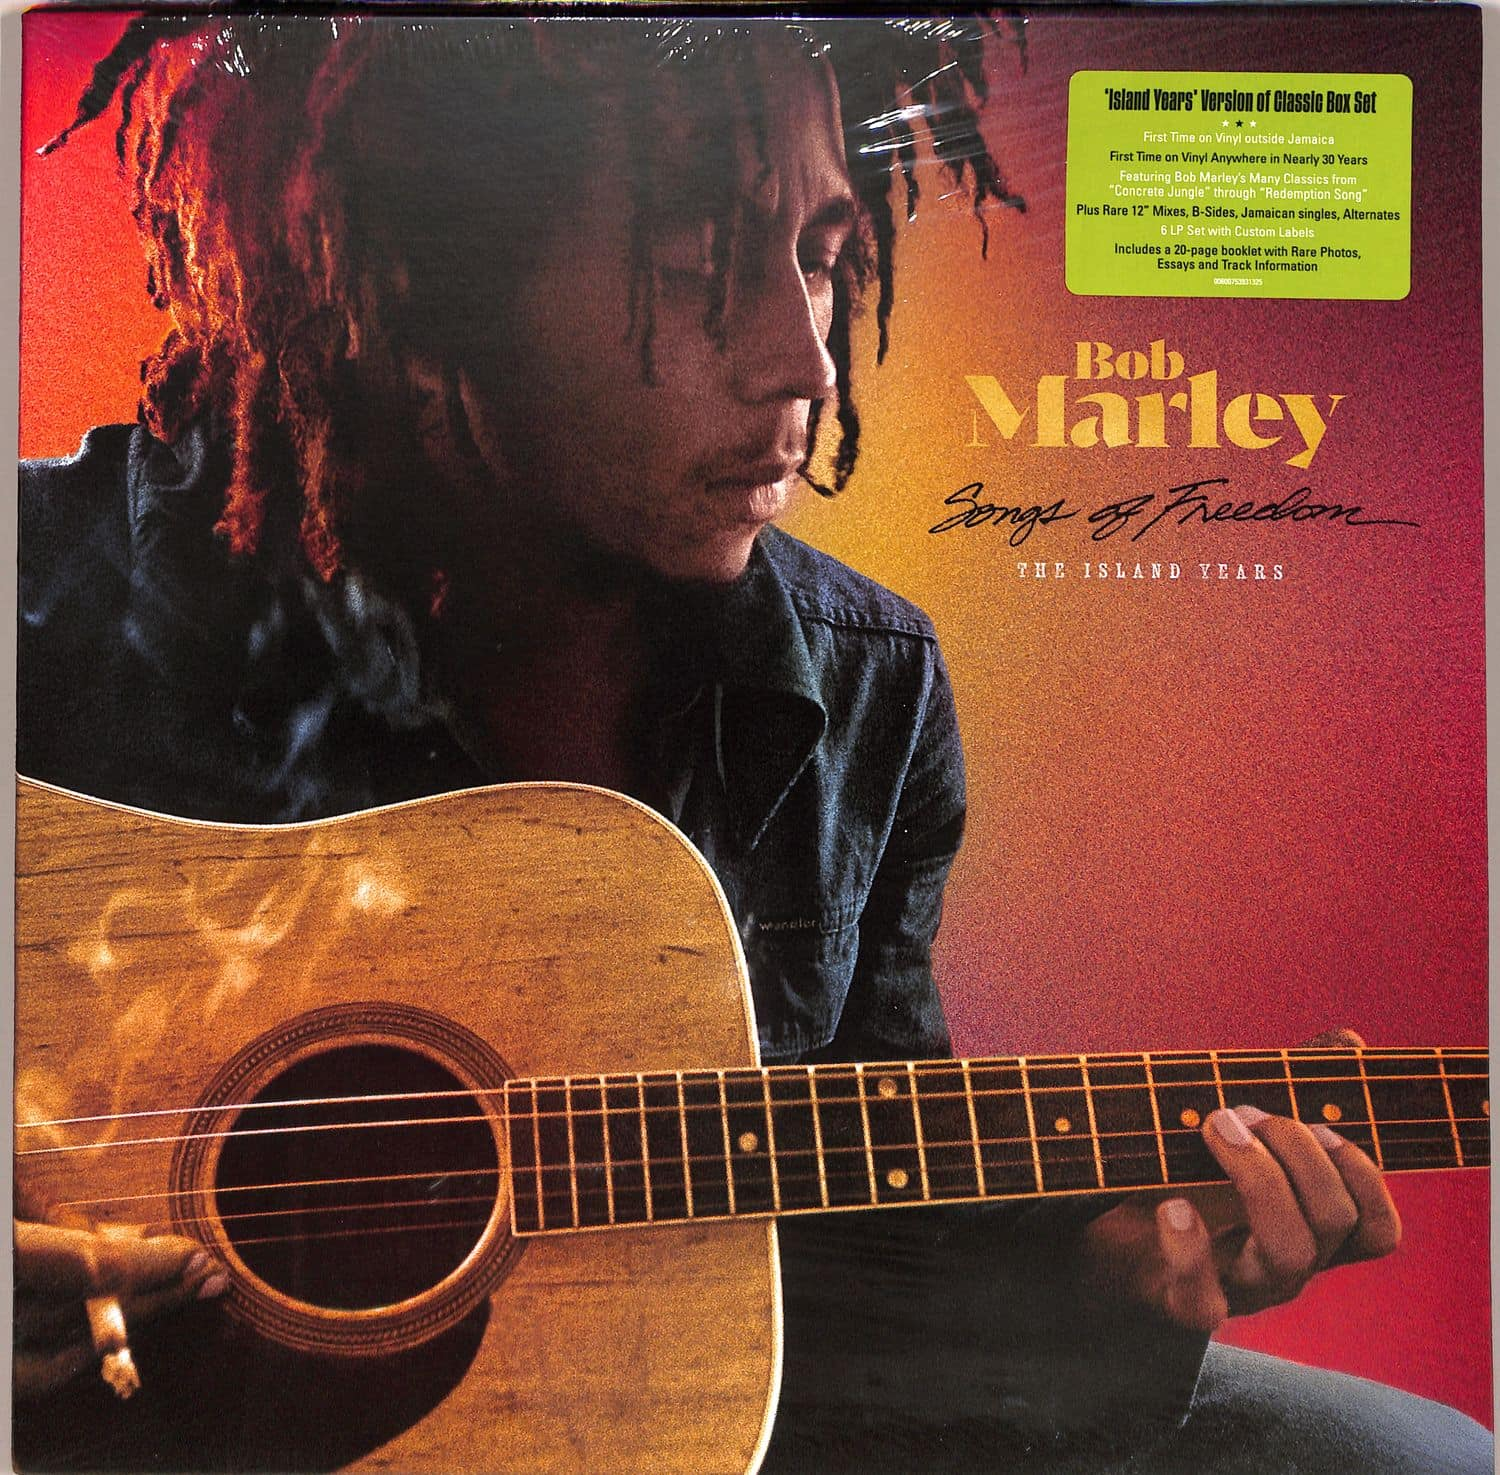 Bob Marley - SONGS OF FREEDOM: THE ISLAND YEARS